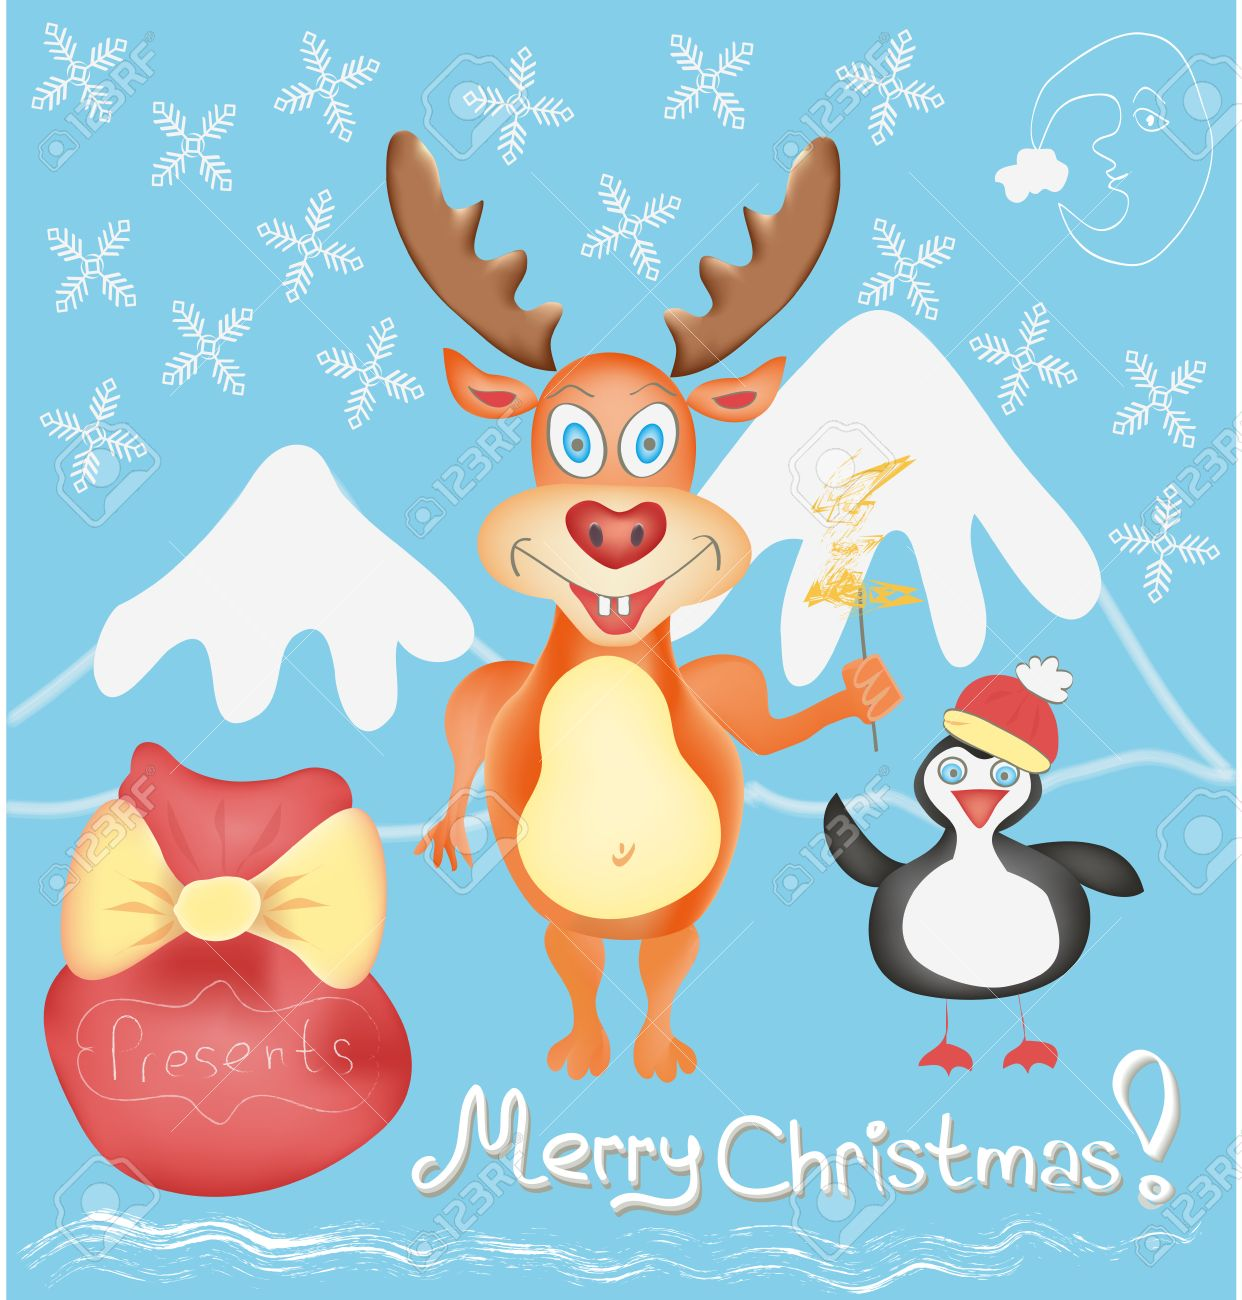 Merry christmas greeting card with deer and penguin cute cartoon merry christmas greeting card with deer and penguin cute cartoon characters with snowflakes and presents bag kristyandbryce Gallery